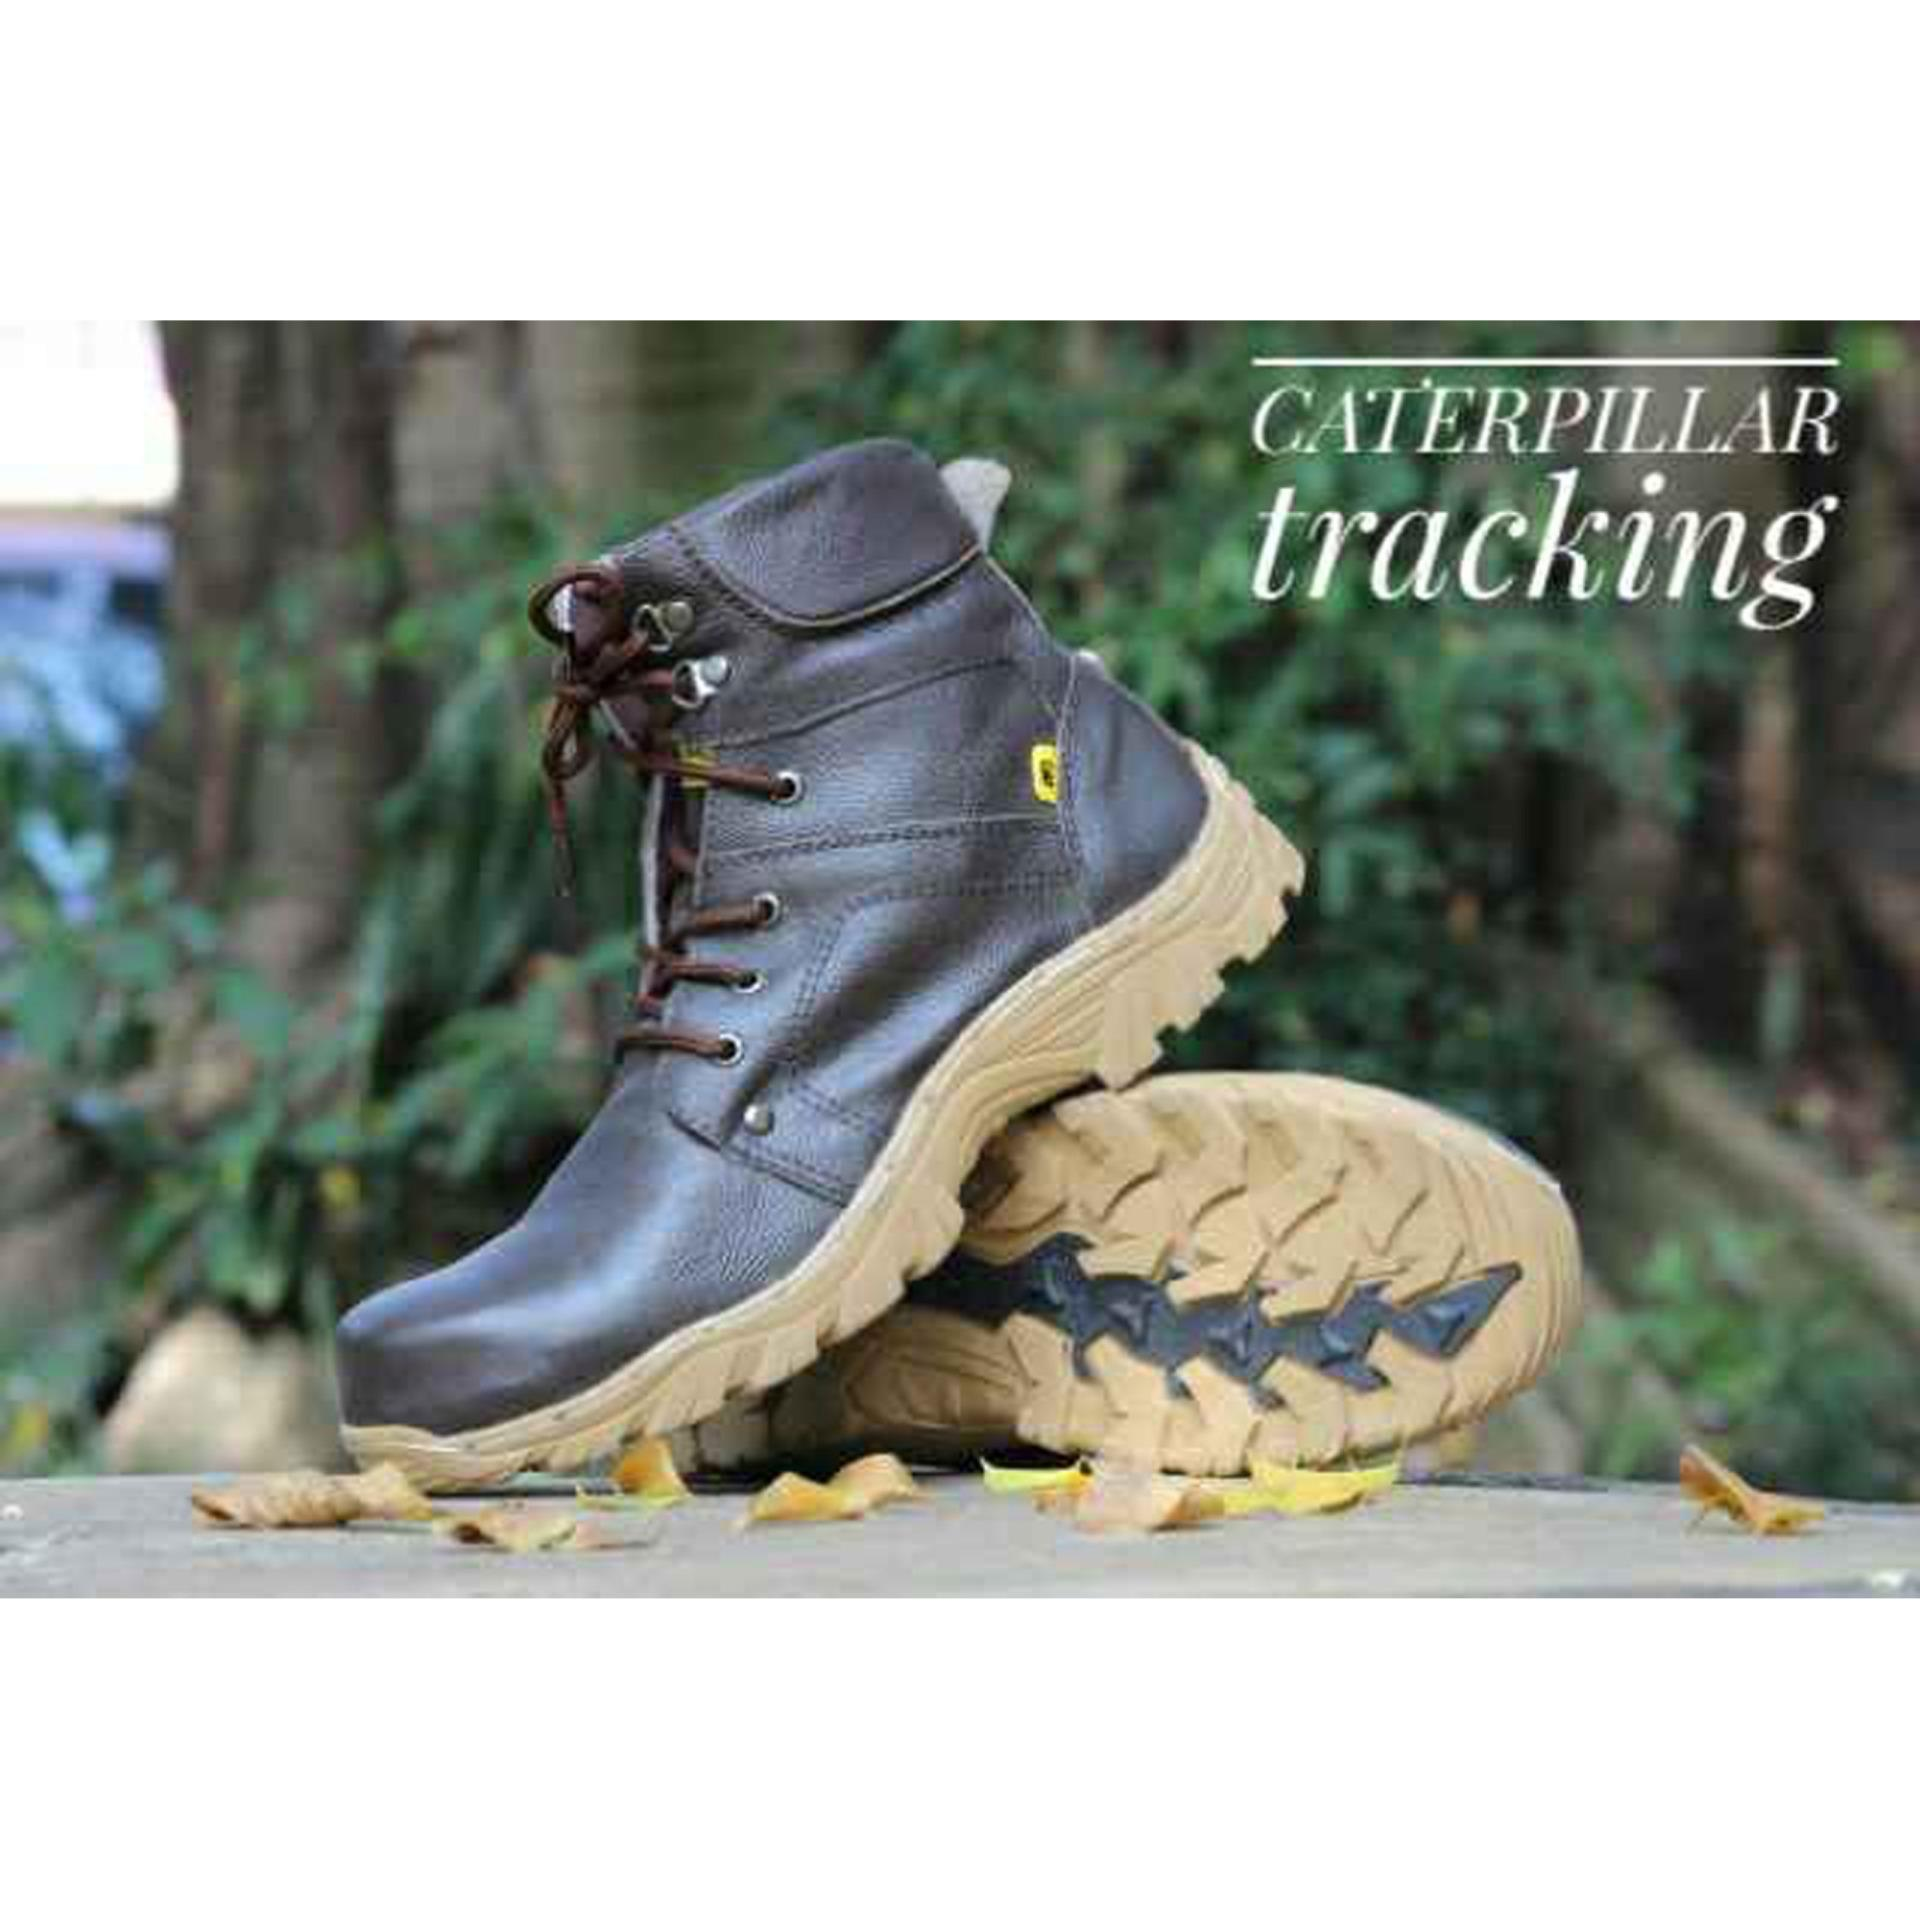 Sepatu Tracking Caterpillar Safety Boots KULIT ASLI